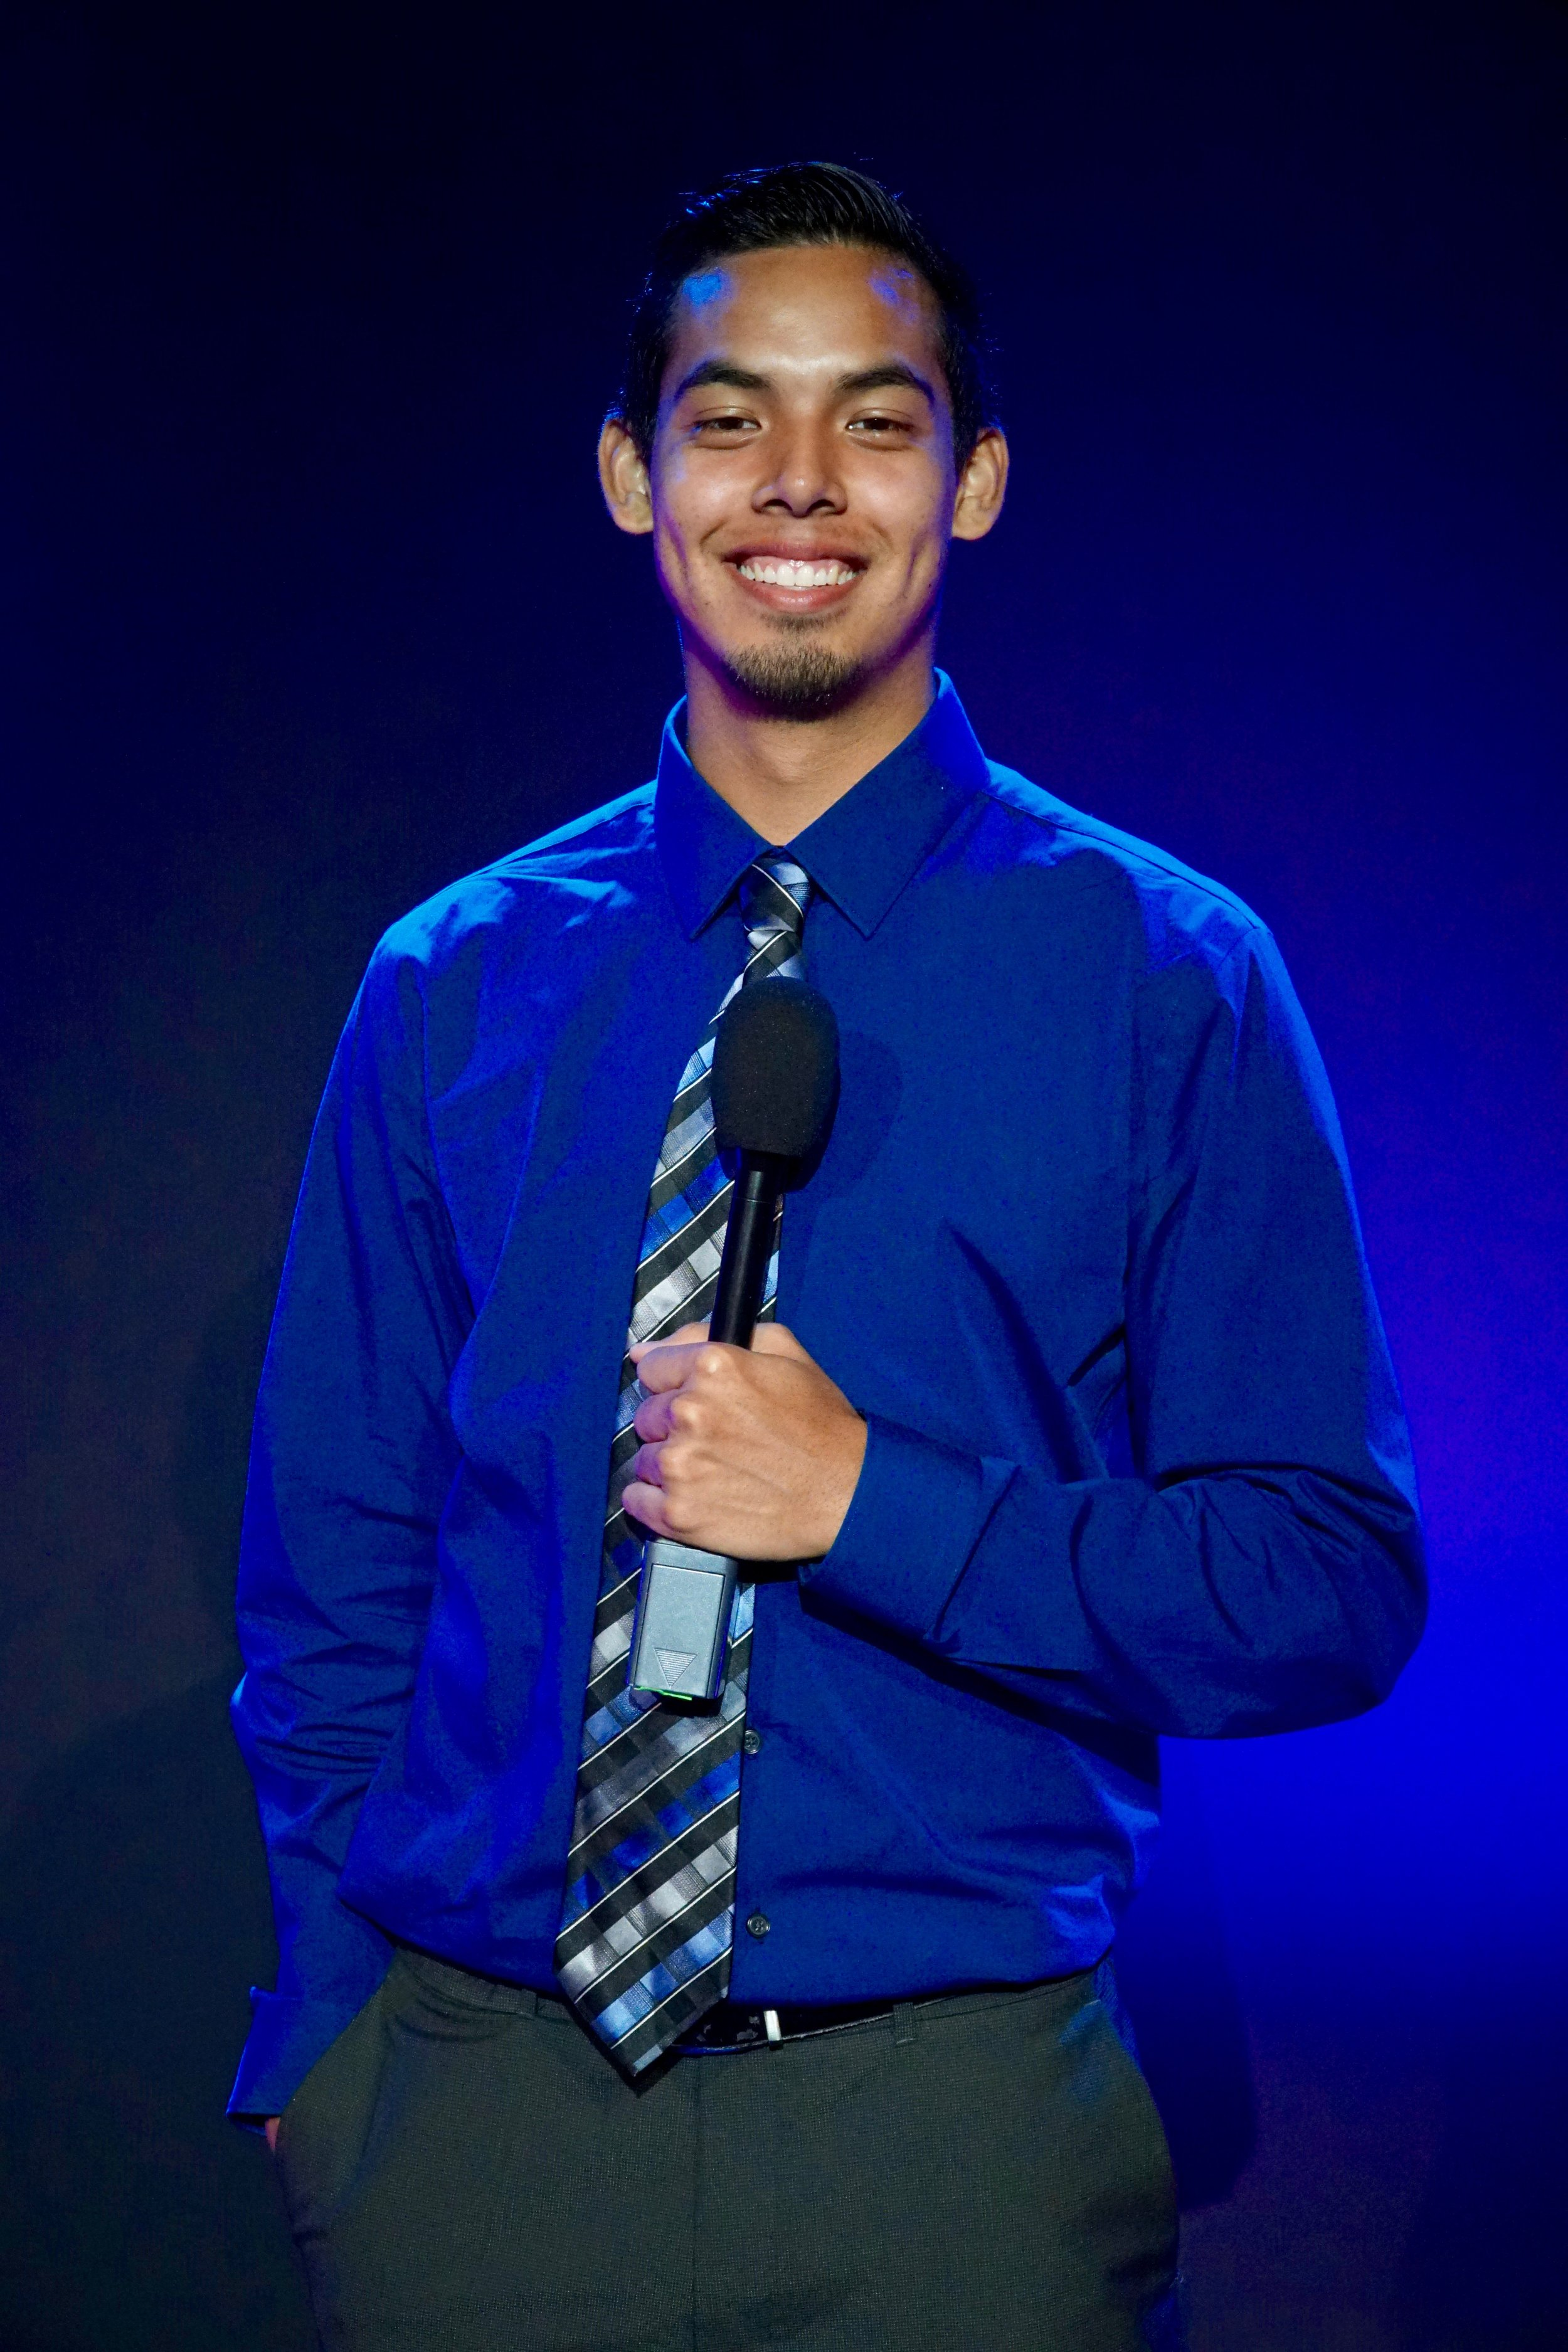 Gonzo Rios - Gonzo Rios is a senior in Communications & Media Technologies. He's passionate about sports, playing every kind of game since the age of 3. When he's not playing sports, he's playing video games. This is his first time hosting a live show, but he has appeared on camera many times, never getting nervous. He wants to use this opportunity to advance his own host skills to become even more comfortable on stage.